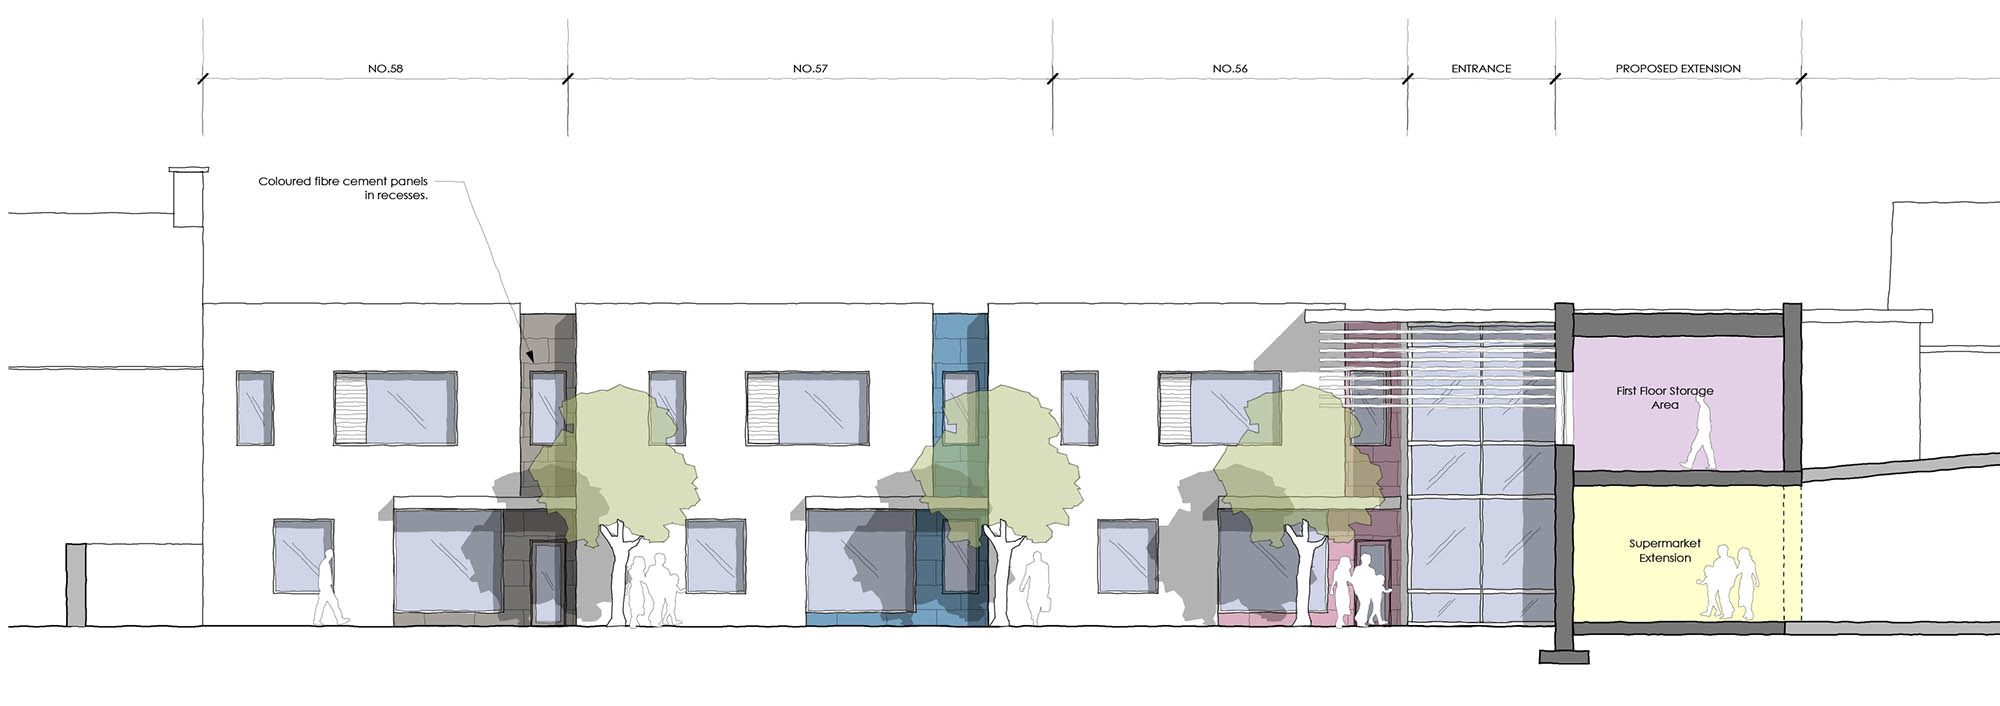 Front Elevation for Skerries Town Centre Redevelopment project